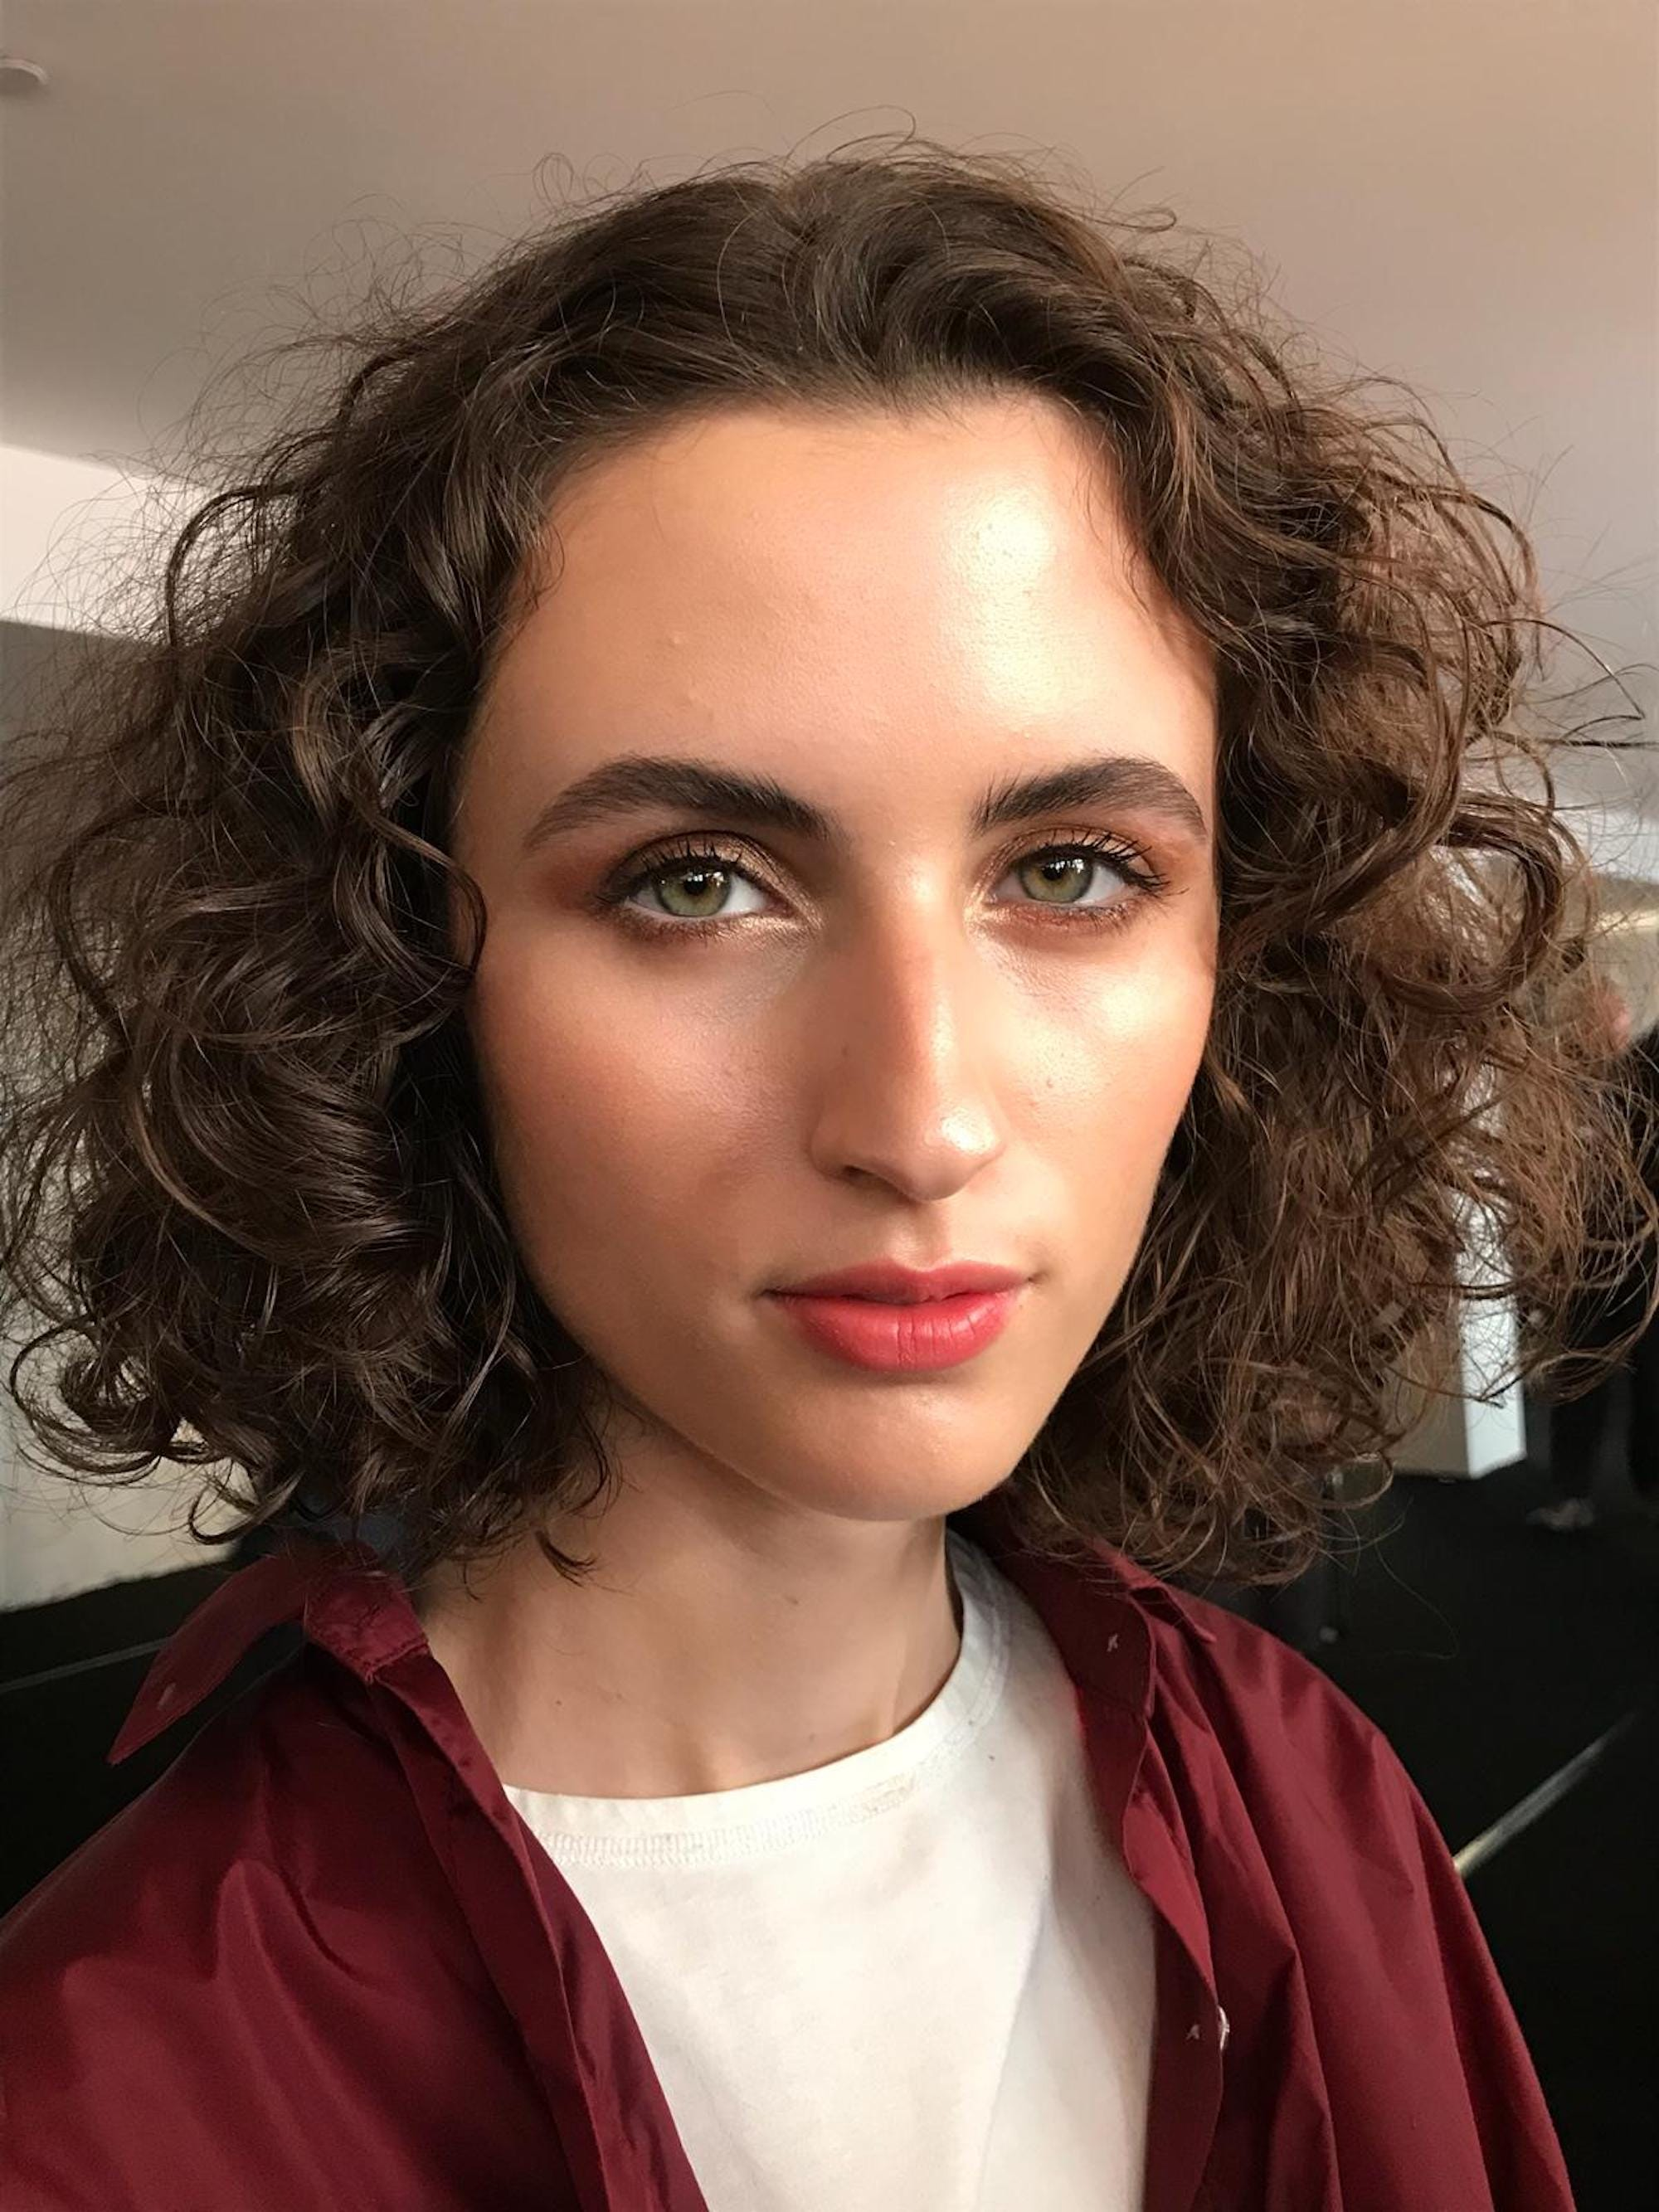 Craziest Beauty Looks From LFW FW2015-2016 forecast